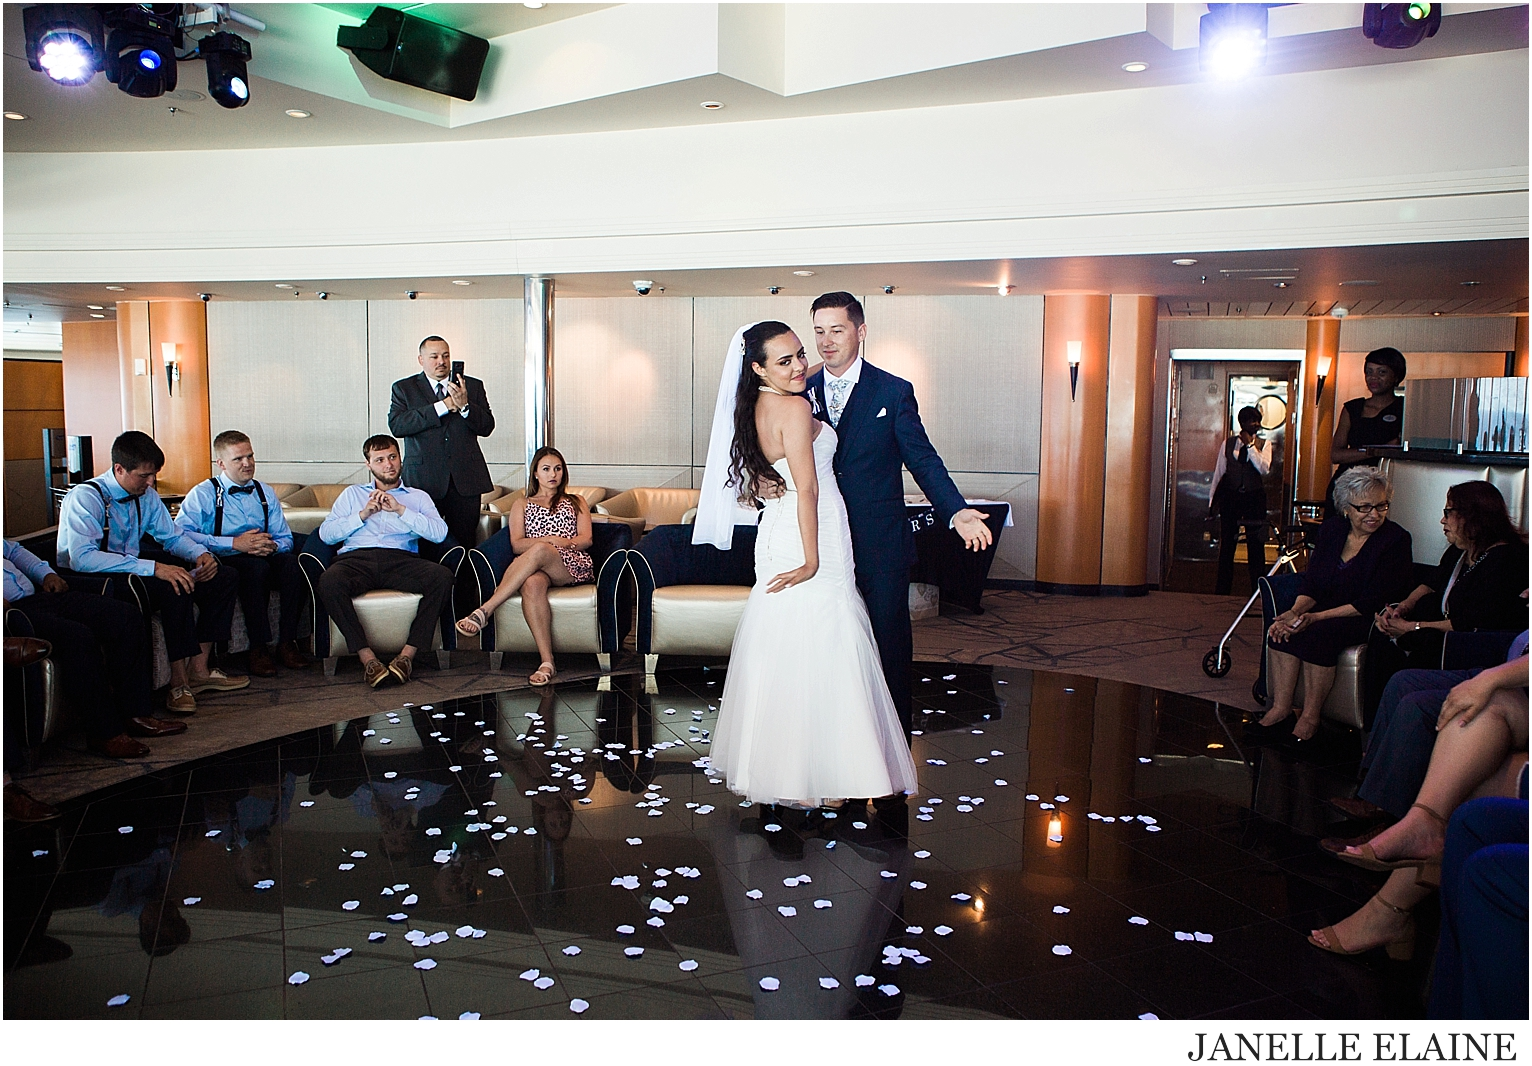 white wedding-royal caribbean-janelle elaine photography-413.jpg